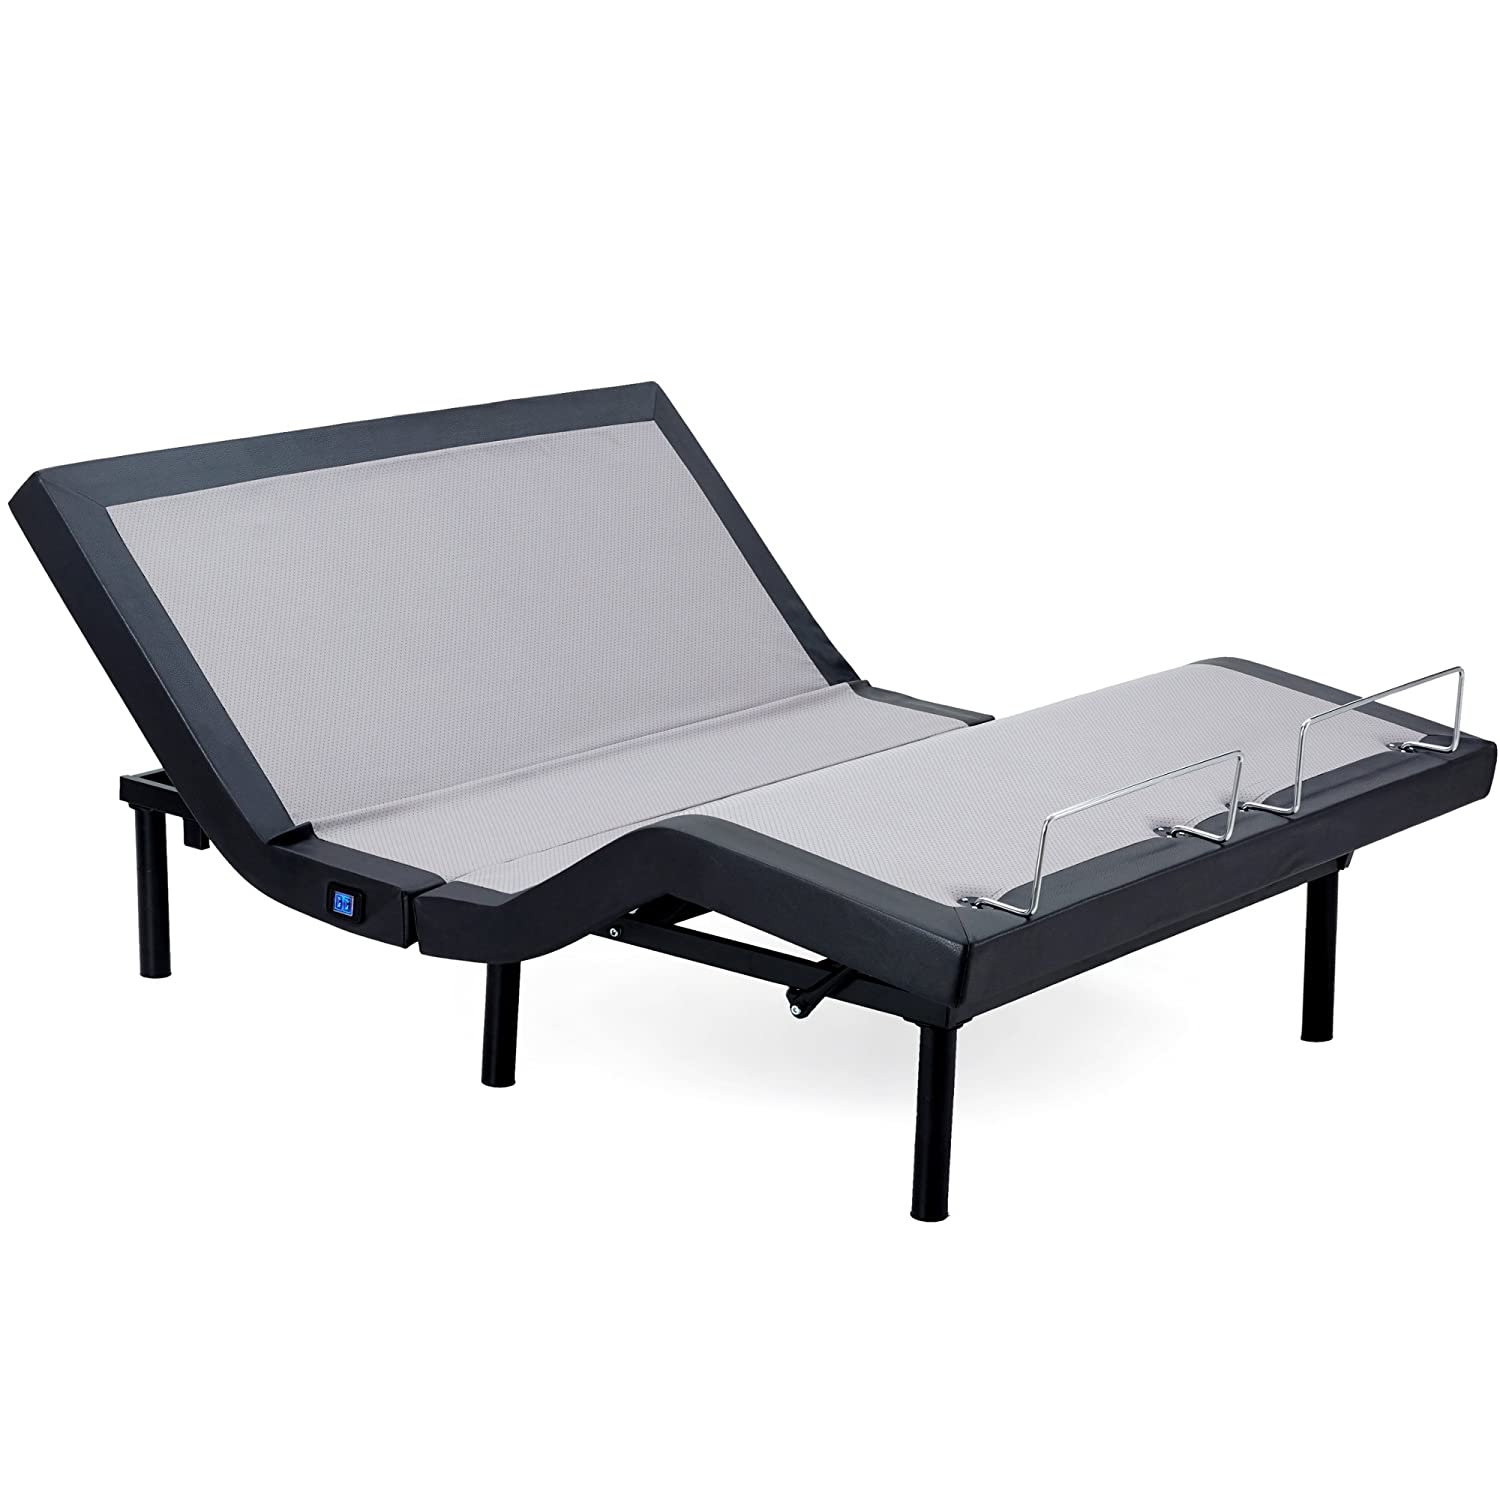 HOFISH Adjustable Bed Black Friday Deal 2019